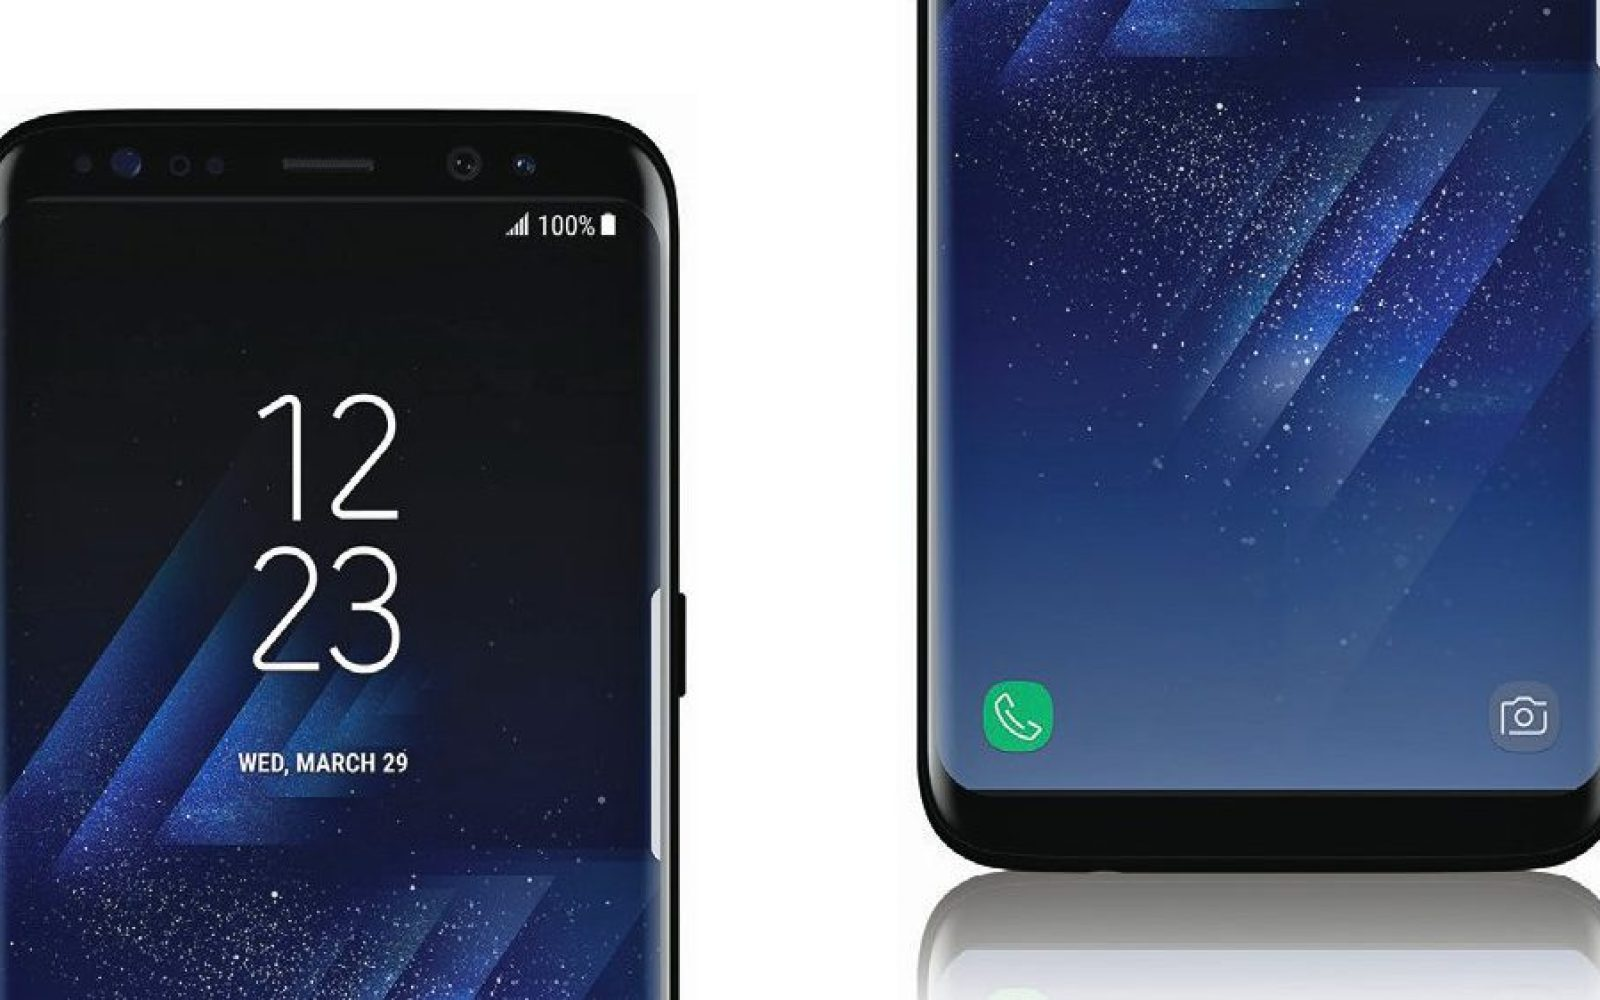 KGI: Samsung's Galaxy S8 lacks 'attractive selling points